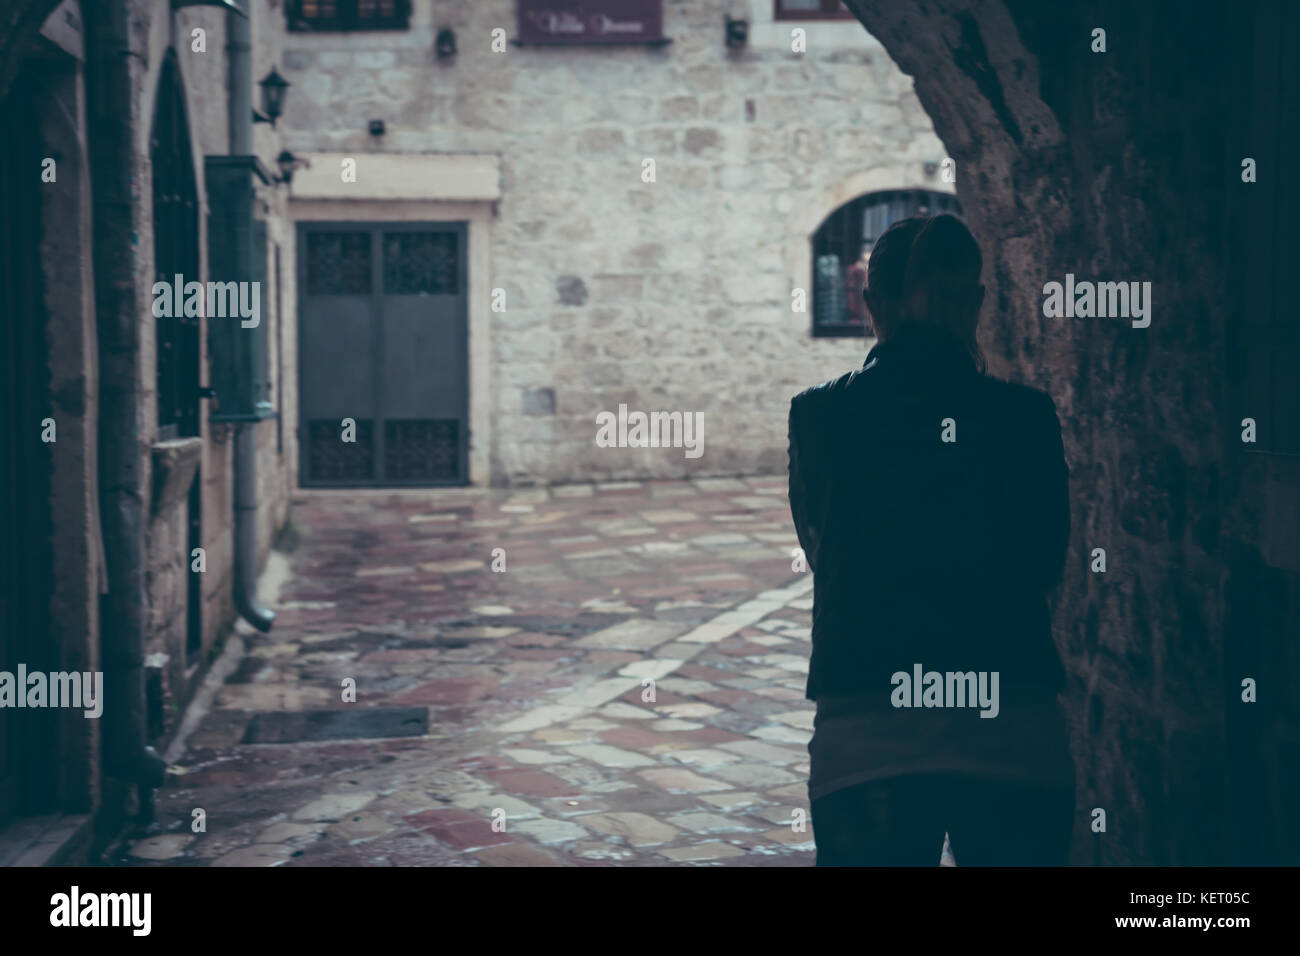 Lonely  woman silhouette walking through dark tunnel of street in rainy day in old city during rain with copy space Stock Photo